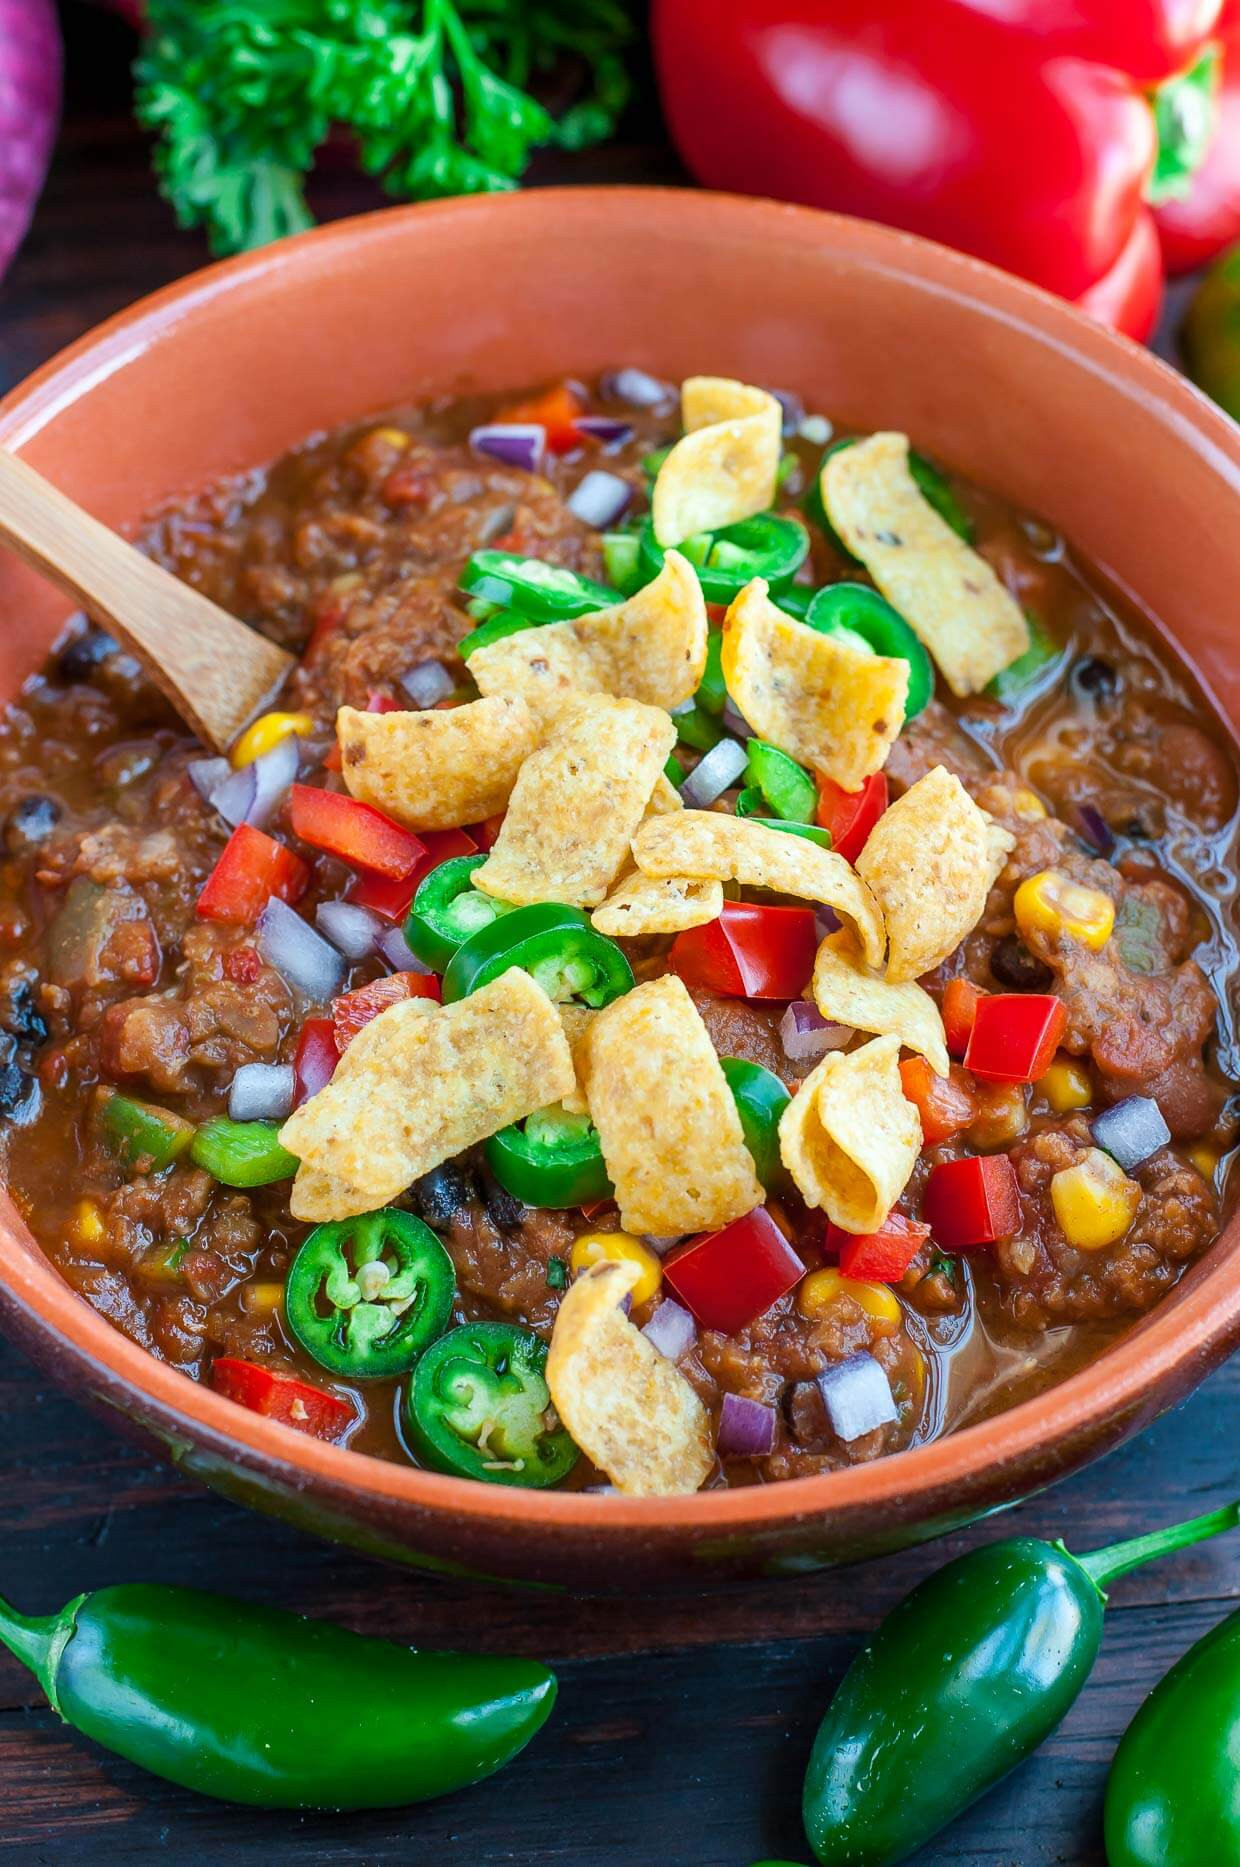 Best Vegetarian Dinner Recipes  The Best 40 Vegan Mexican Recipes for a Healthy Easy